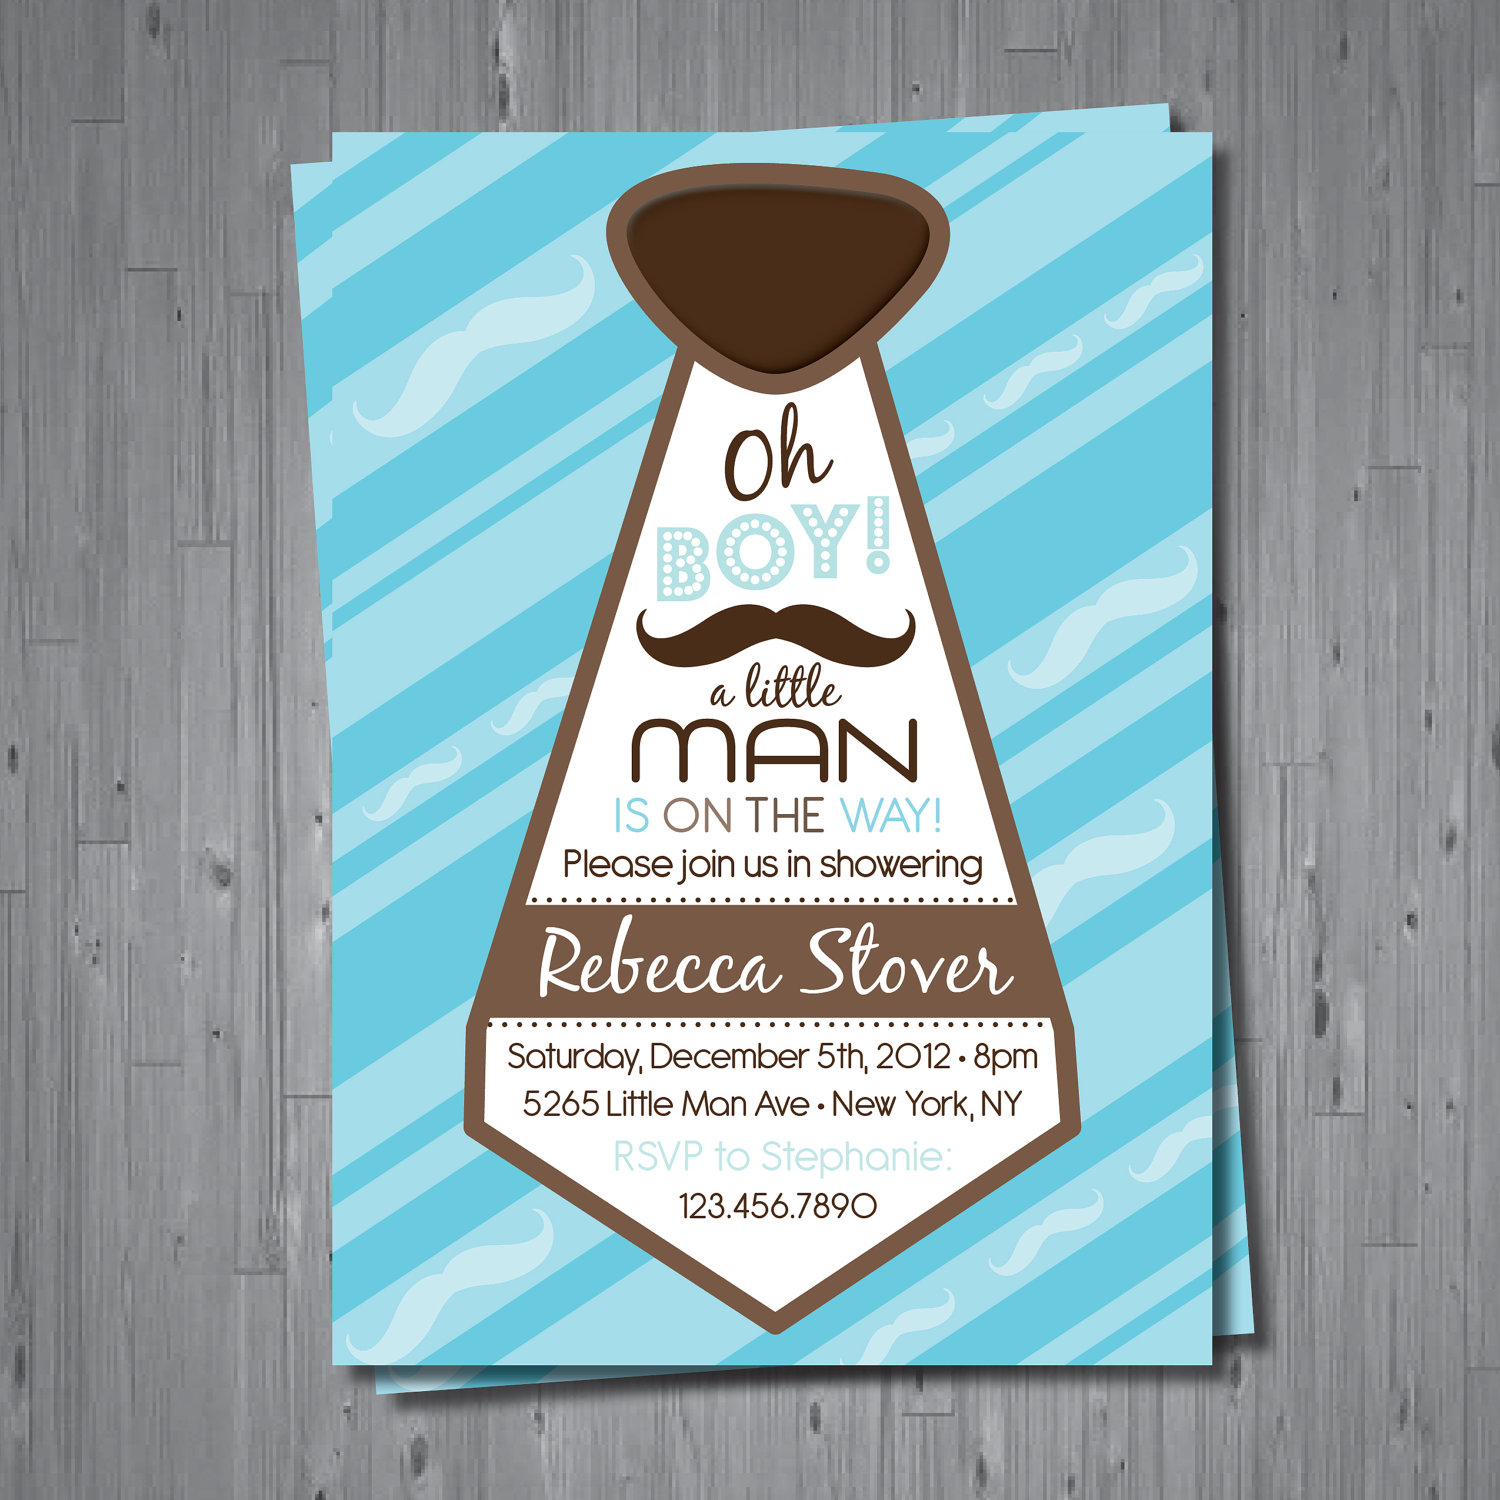 Free Mustache Ba Shower Invitations Templates All Invitations inside dimensions 1500 X 1500